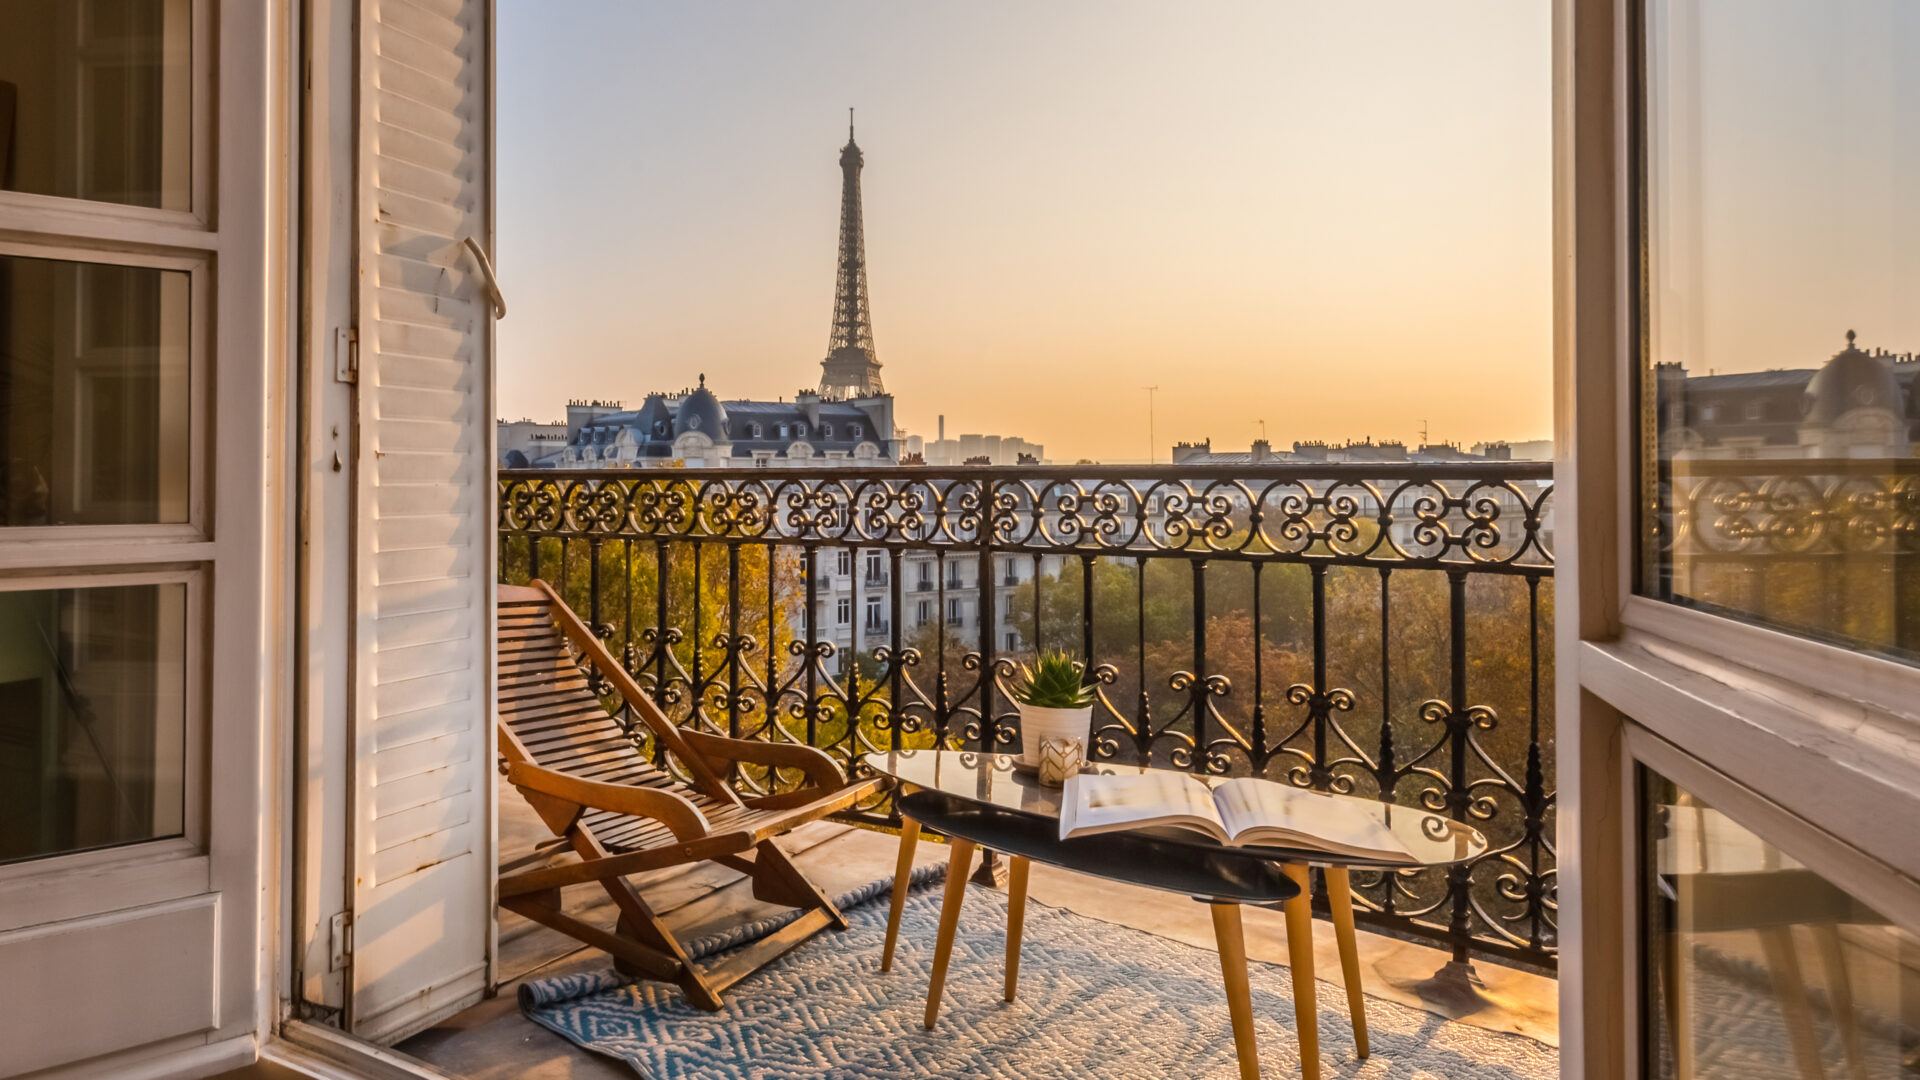 View of the Eiffel Tower from our balcony in Paris